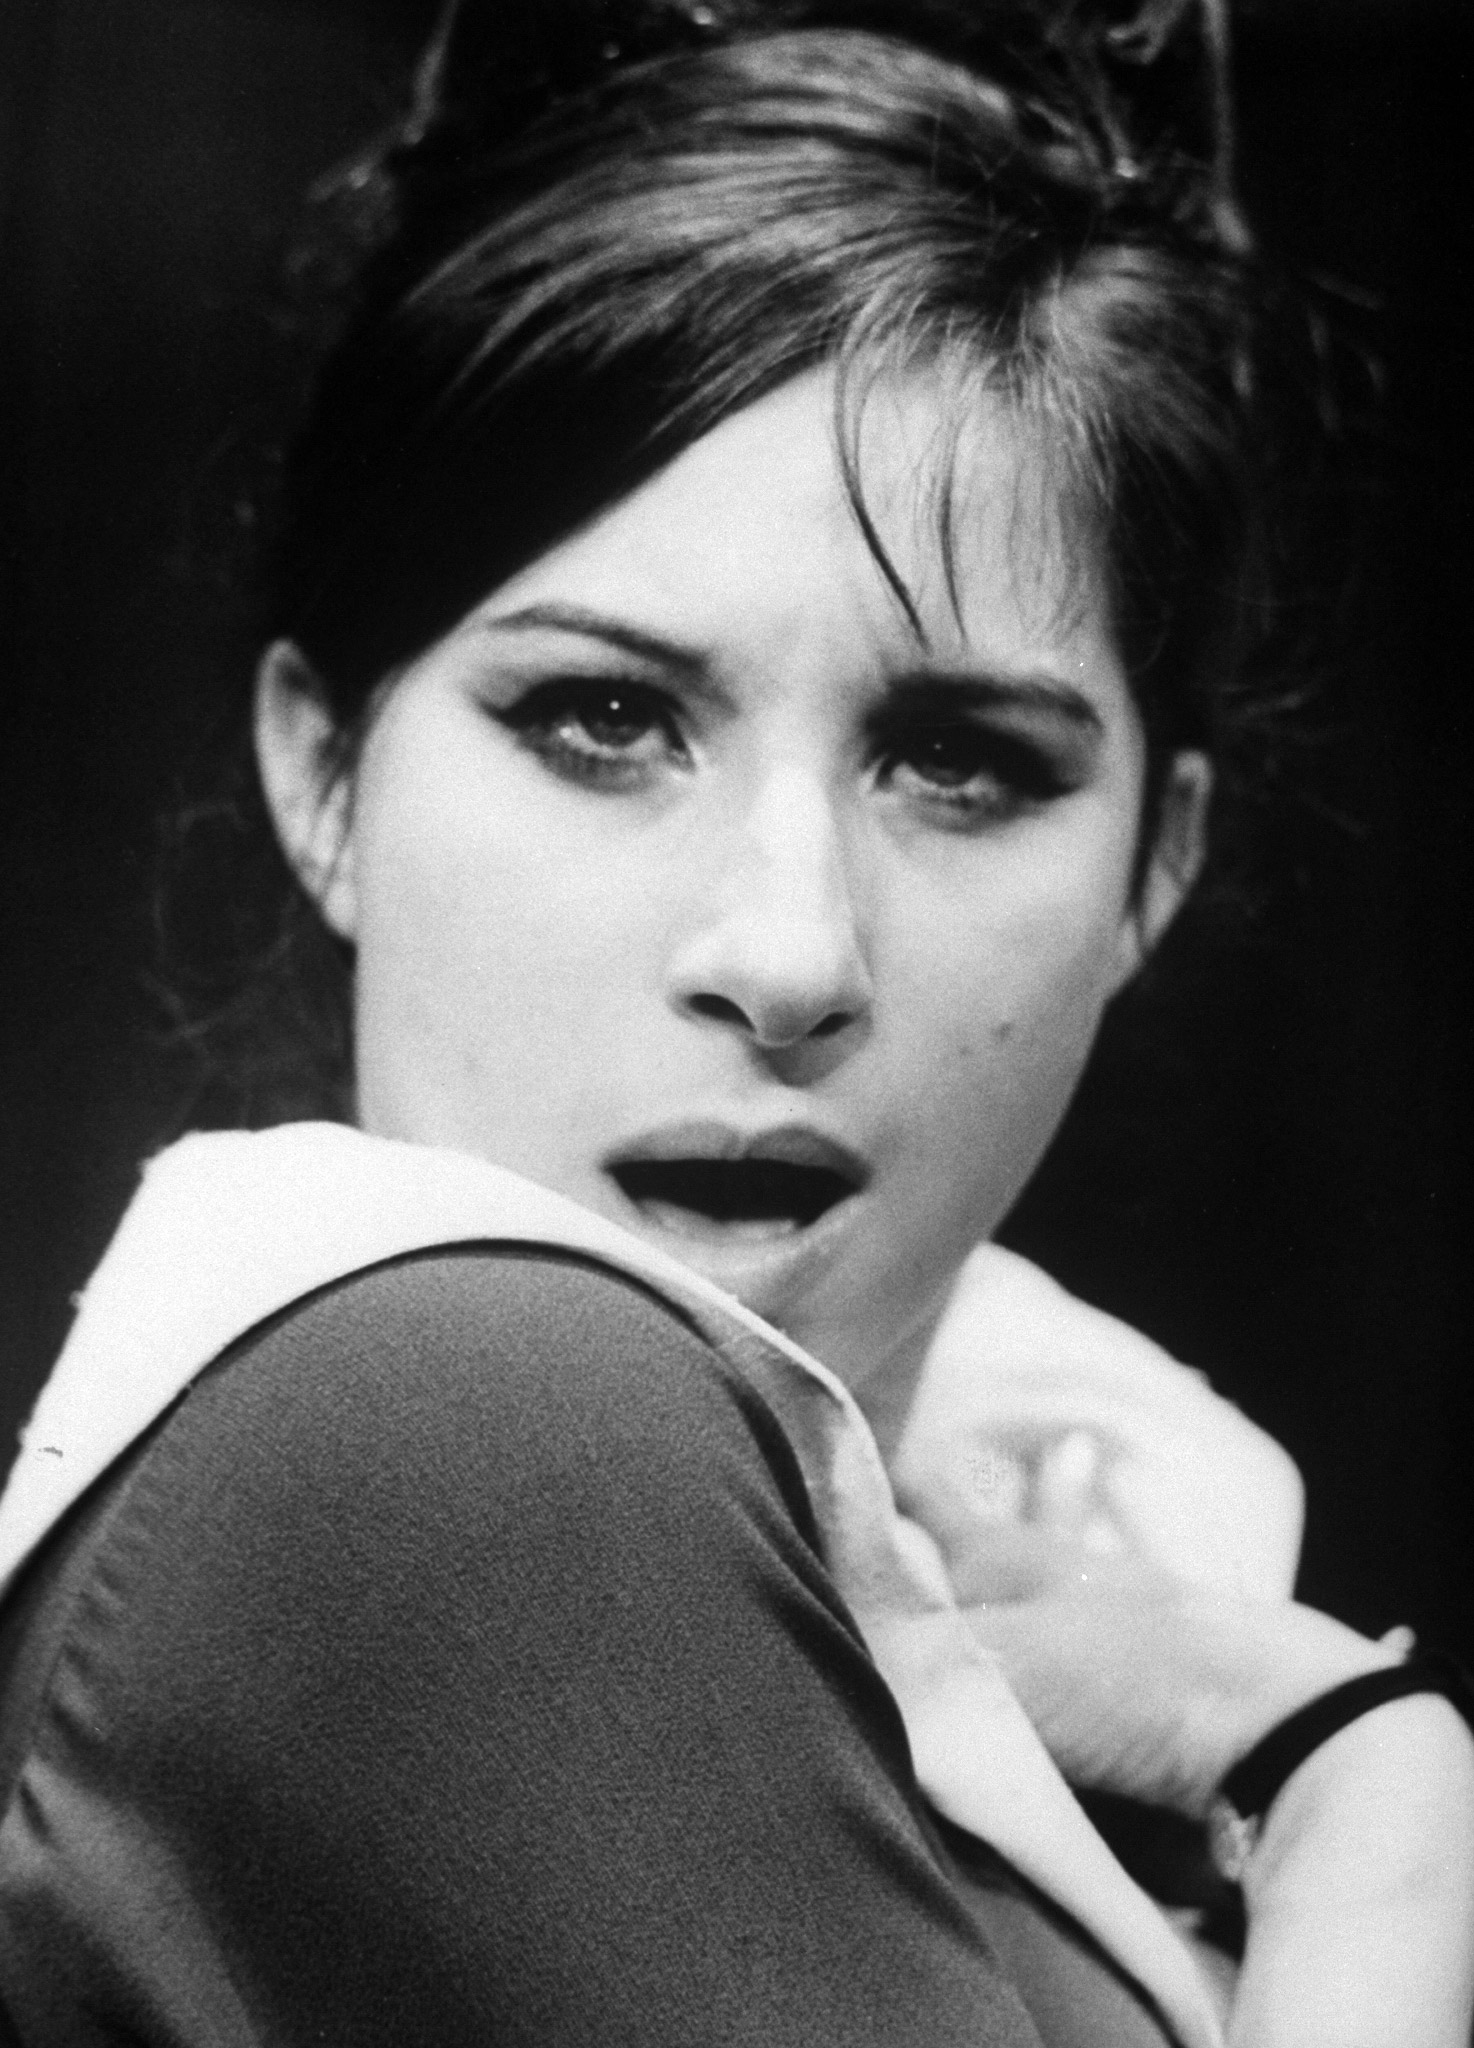 19-year-old Barbra Streisand as Miss Marmelstein in the Broadway play 'I Can Get It For You Wholesale.'